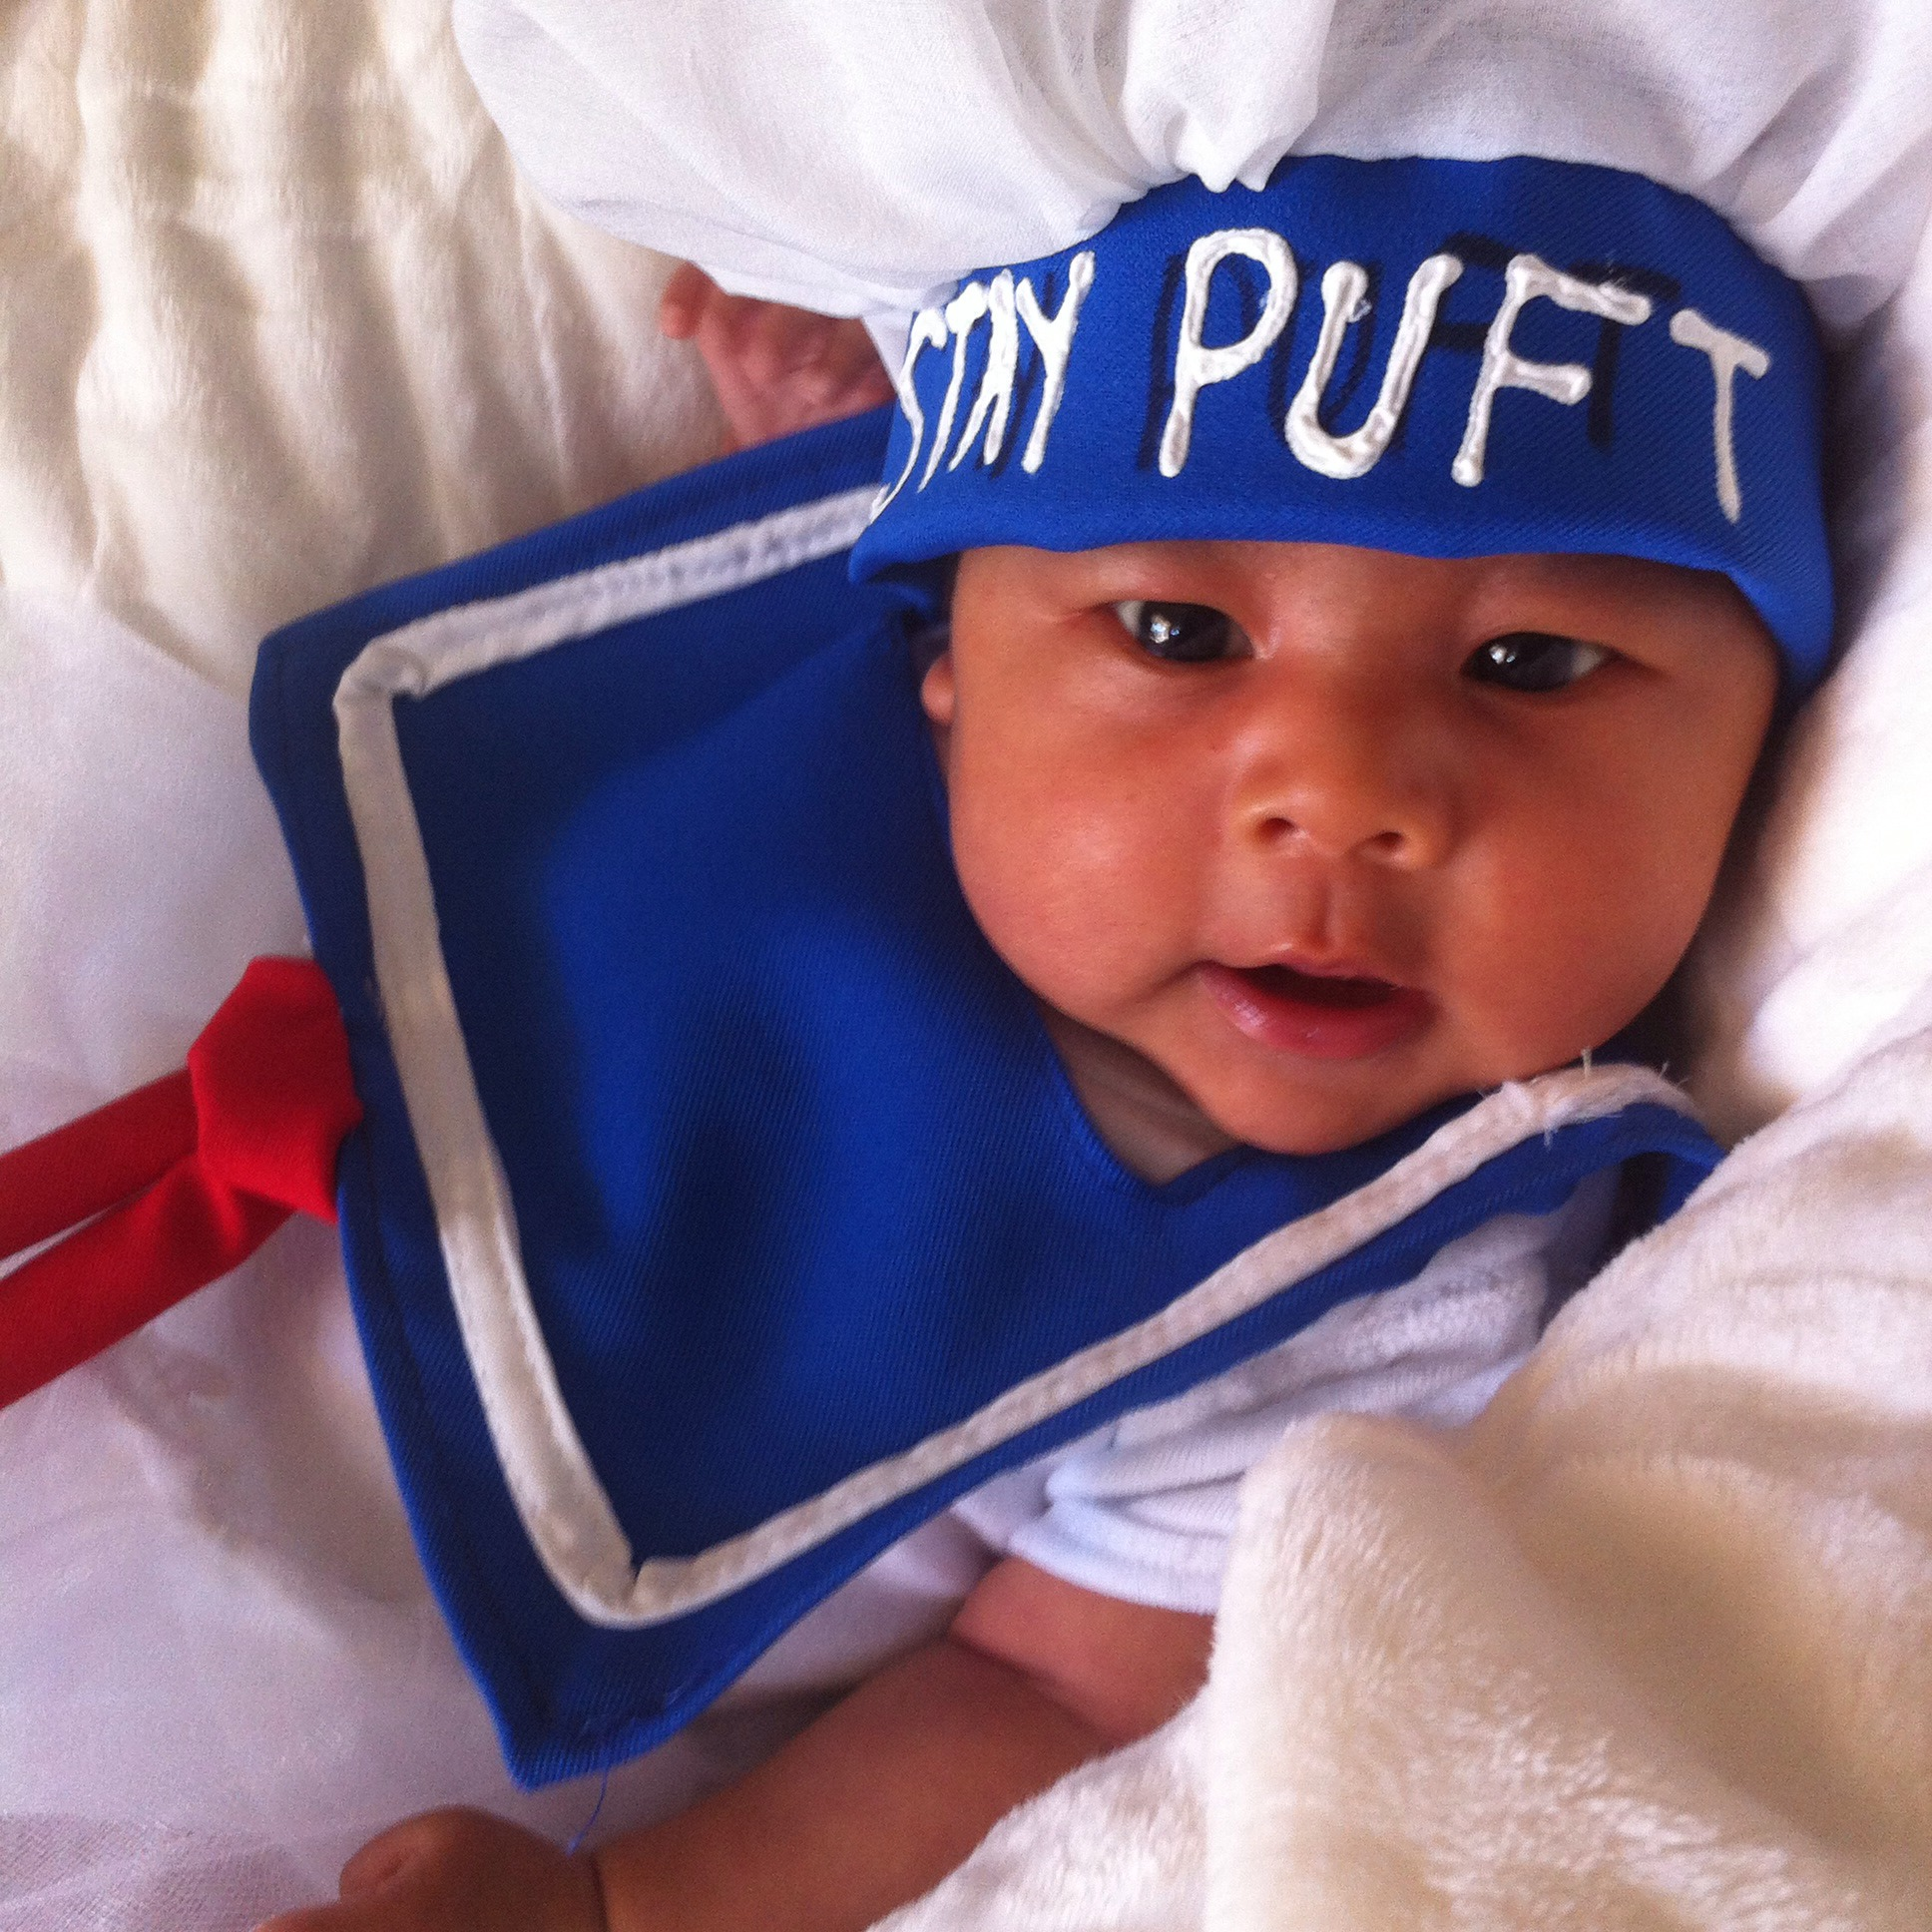 Stay Puft Marshmallow Baby